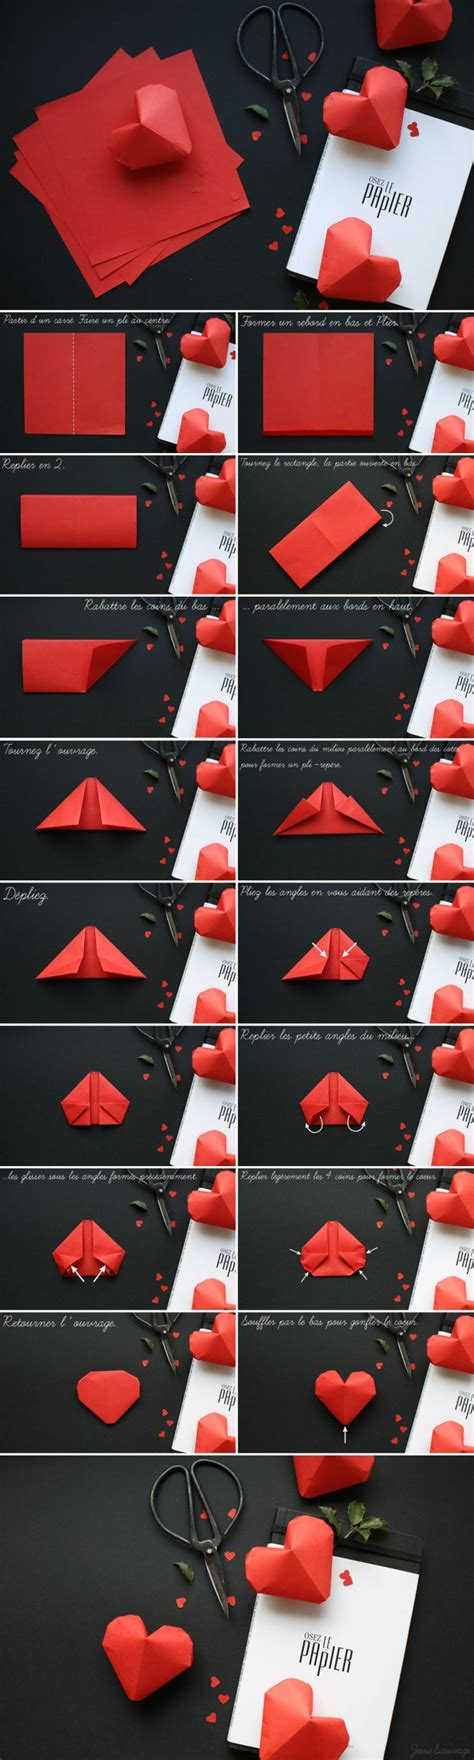 3d Origami Hearts - how to fold lovely origami hearts how to